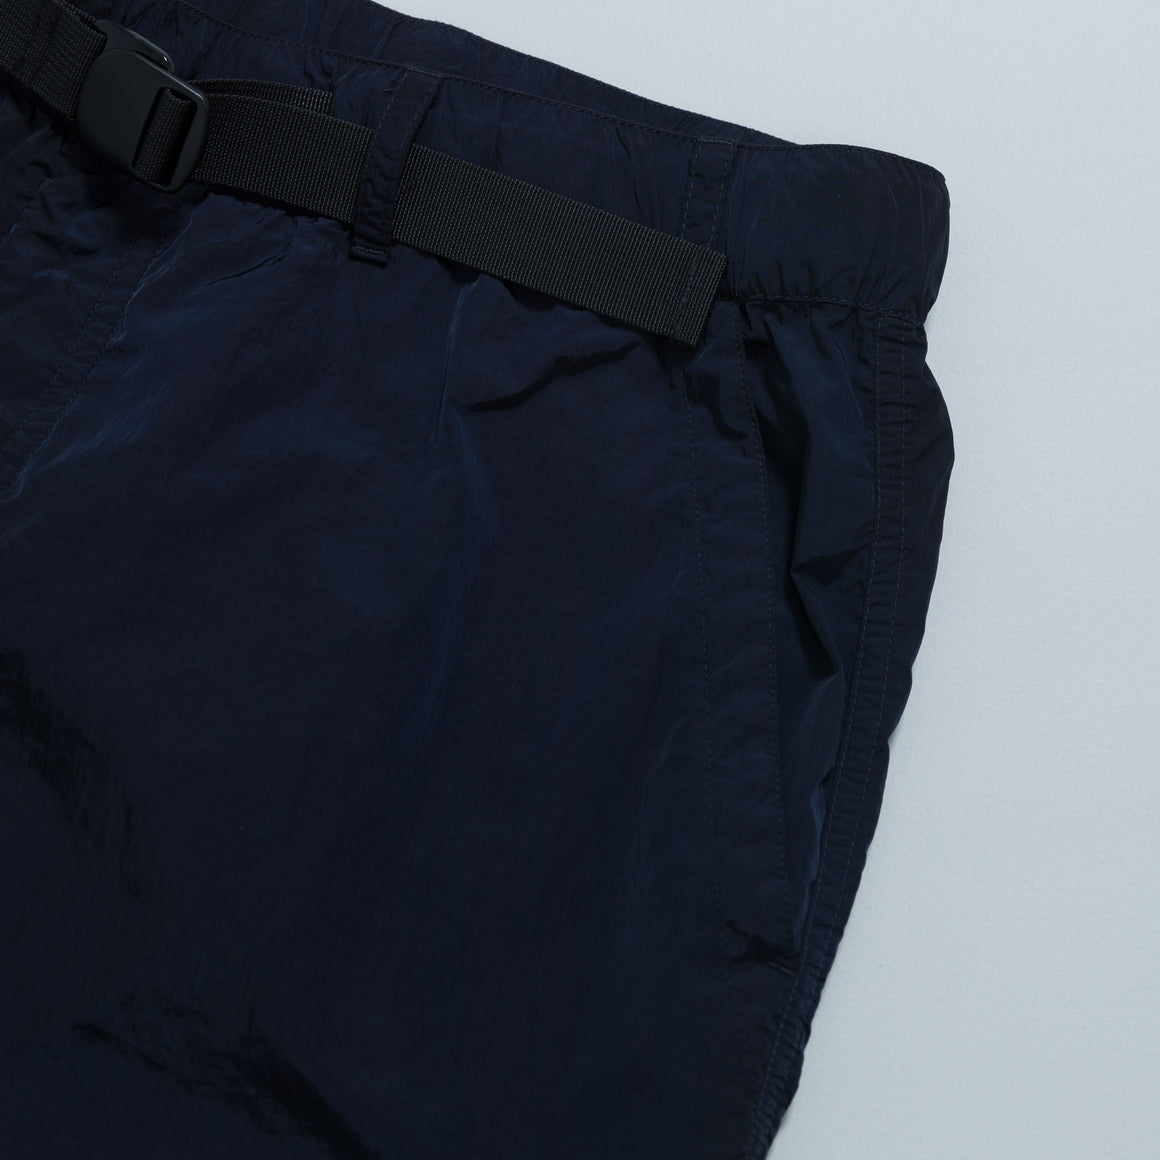 Luther GMD Nylon Shorts - Dark Navy - Up There